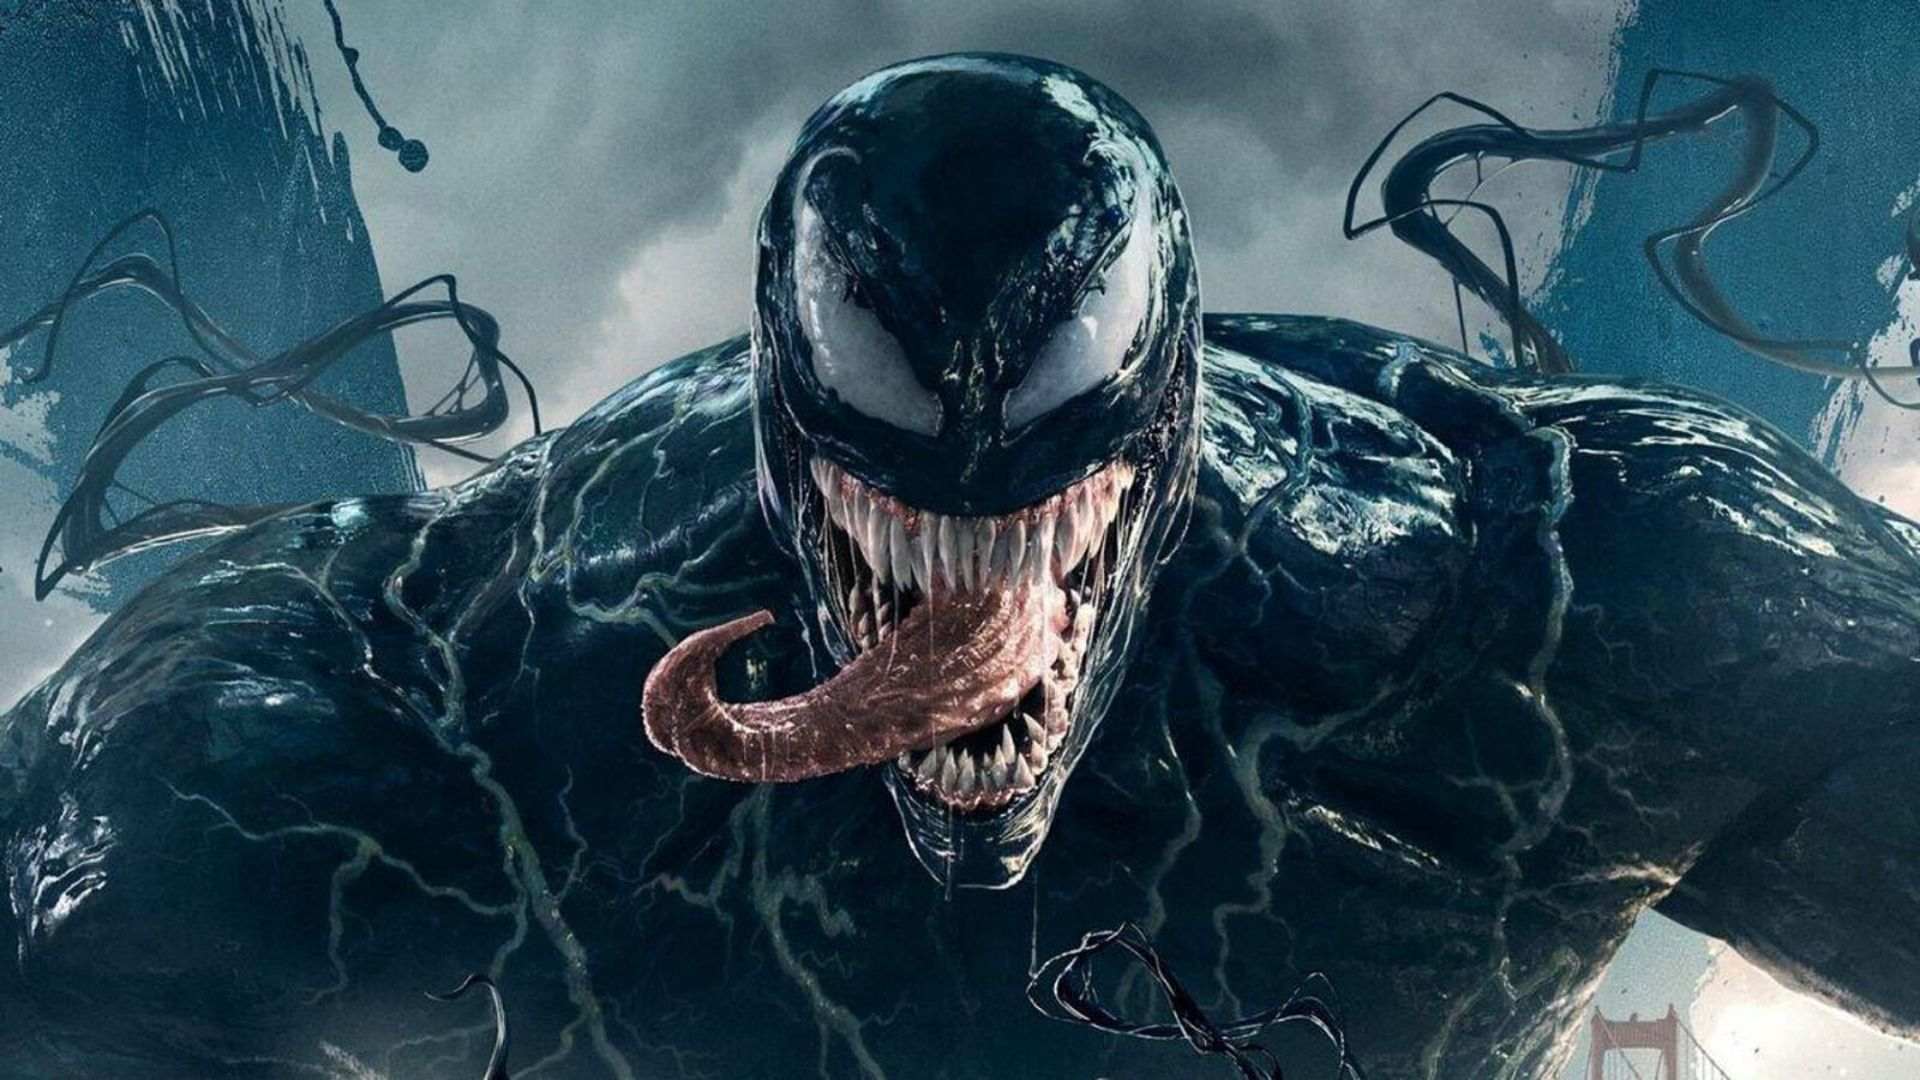 It was no surprise that the sequel was immediately confirmed in an unexpected blockbuster from Sony's venom.